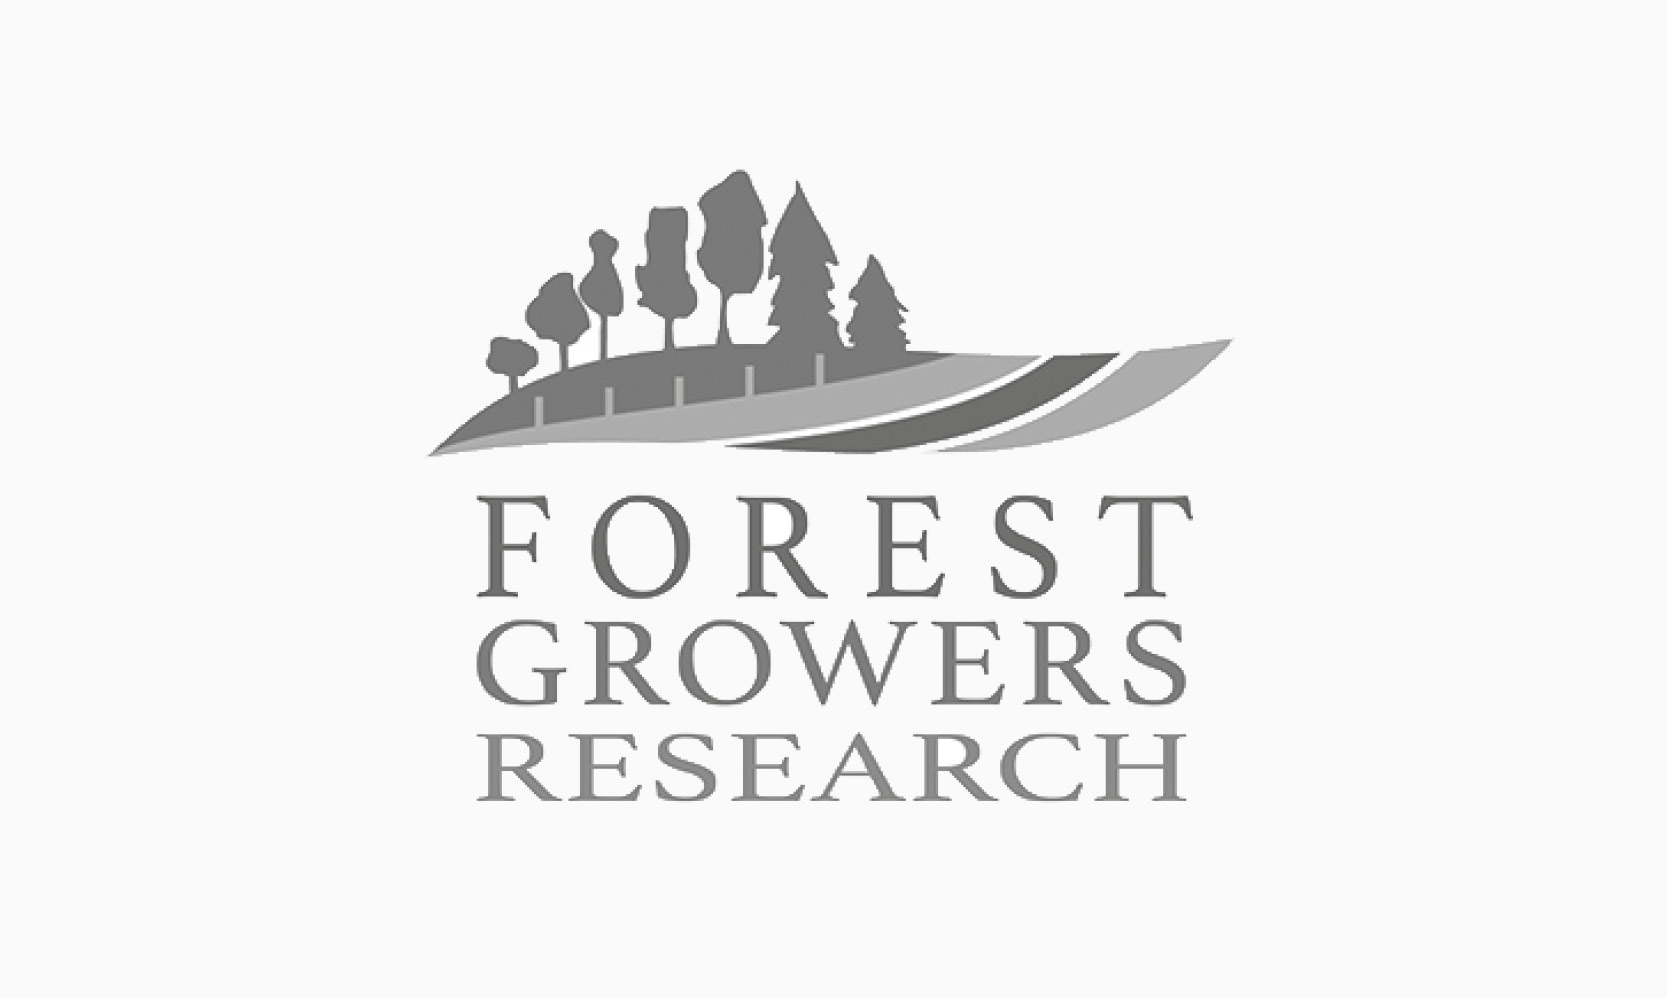 otmetka-partner-forest-growers-research-fgr-logo-2020